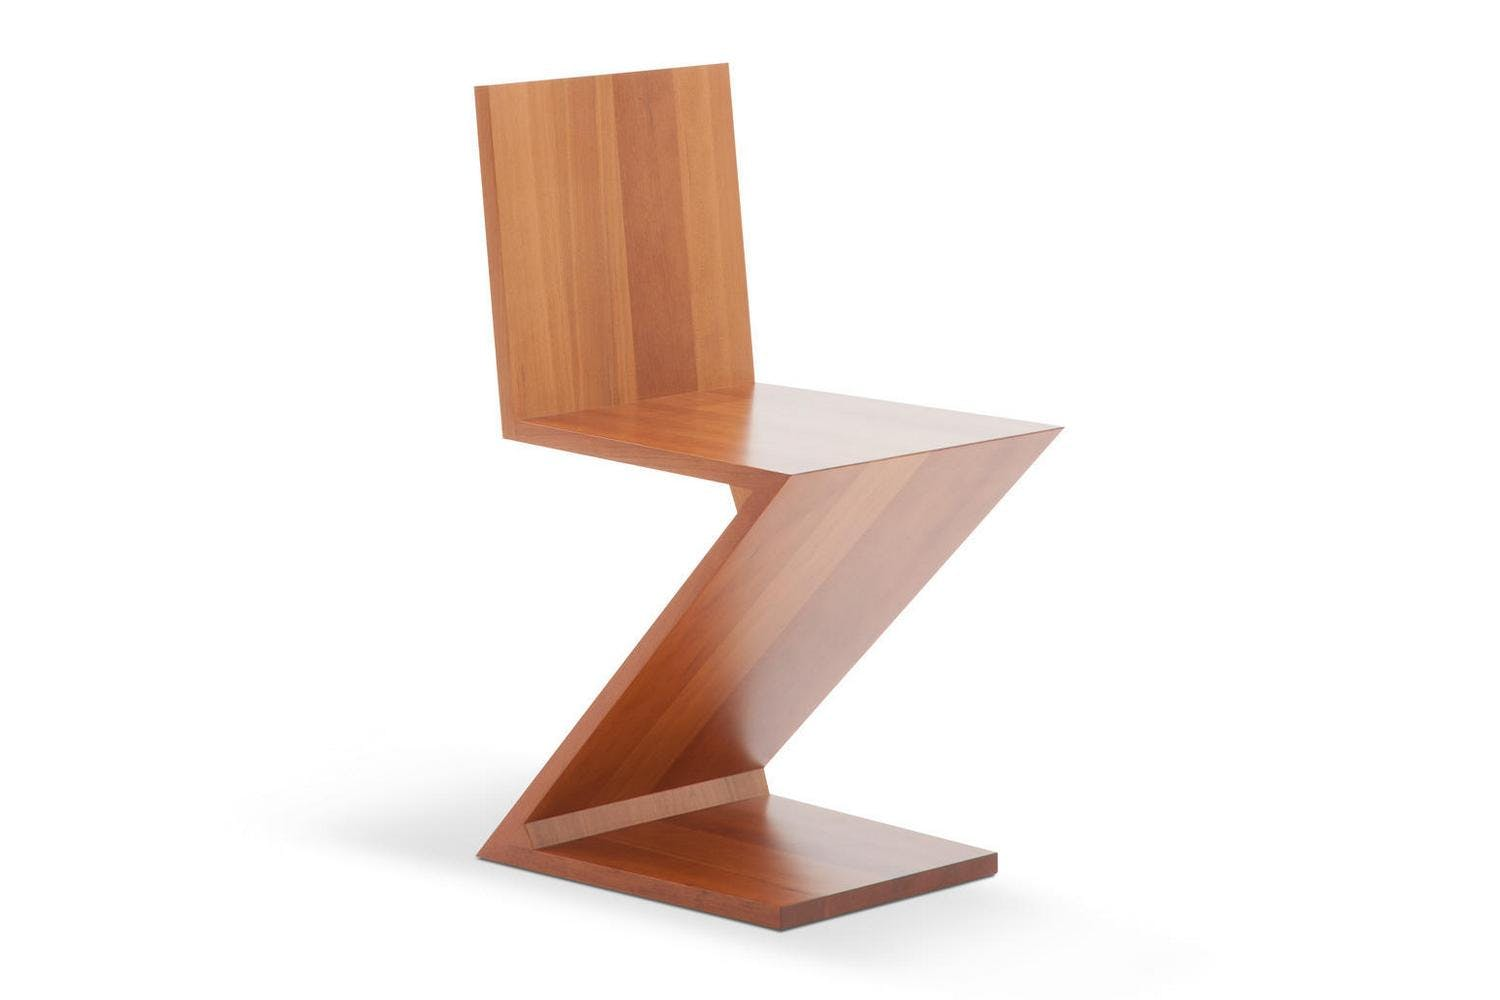 Magnificent 280 Zig Zag Chair By Gerrit Thomas Rietveld For Cassina Short Links Chair Design For Home Short Linksinfo